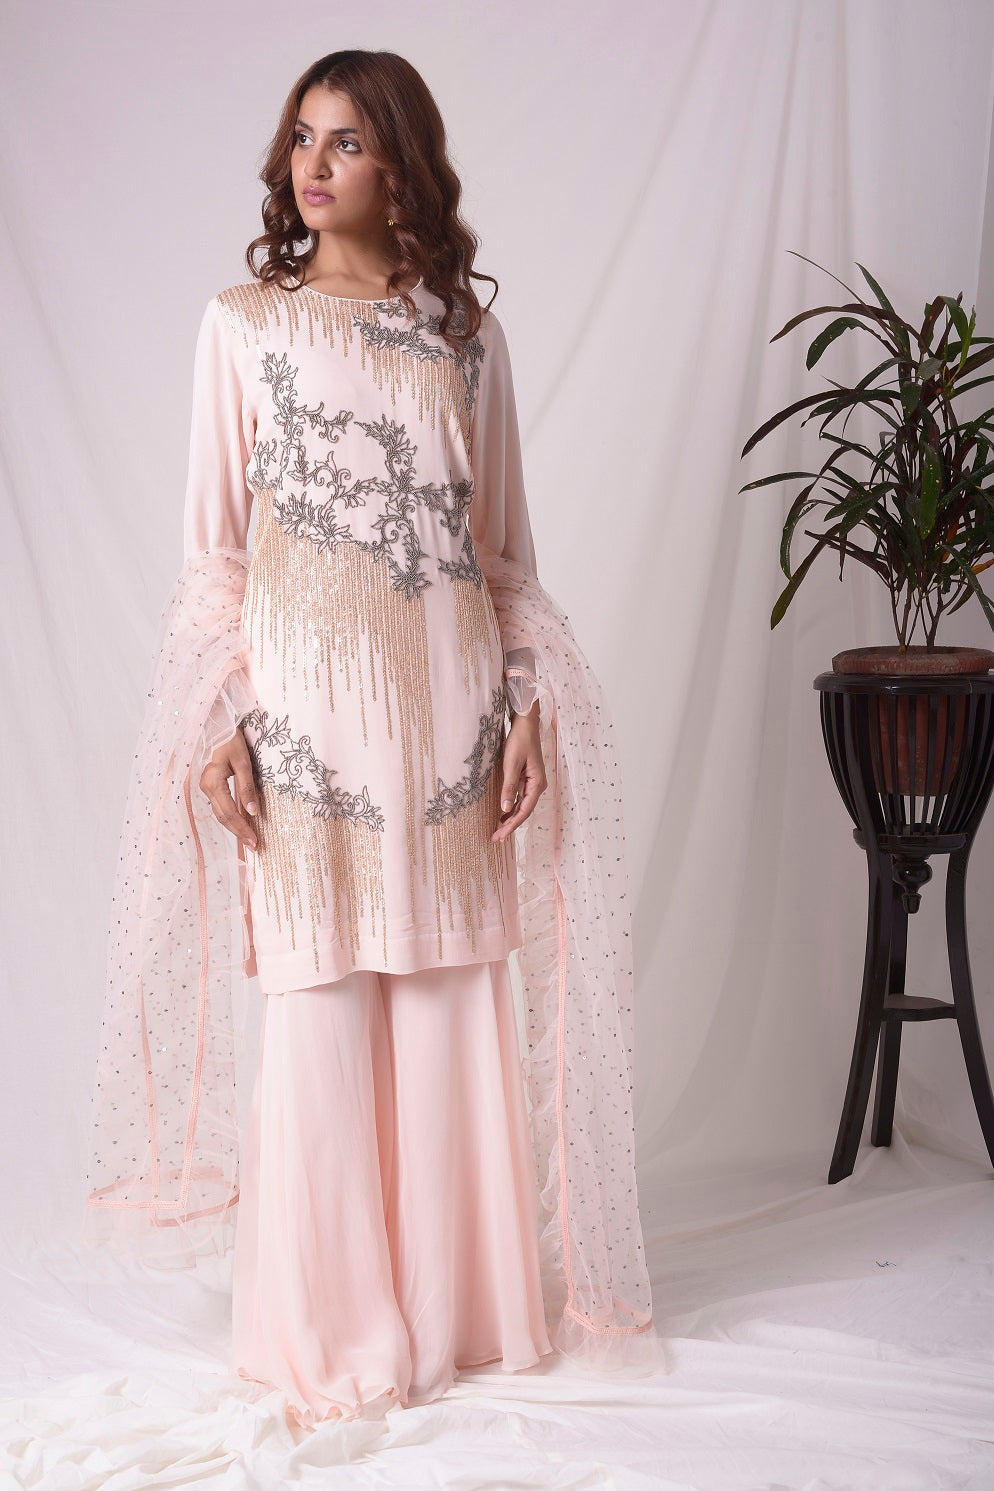 Buy pink georgette suit online in USA. Suit has gold and grey design work. Kurta has long sleeves. Suit had baby pink palazzo and pink net duppatta. Simple look makes it elegant. Be the talk of parties and weddings with exquisite designer gowns from Pure Elegance Indian clothing store in USA. Shop online now.-full view